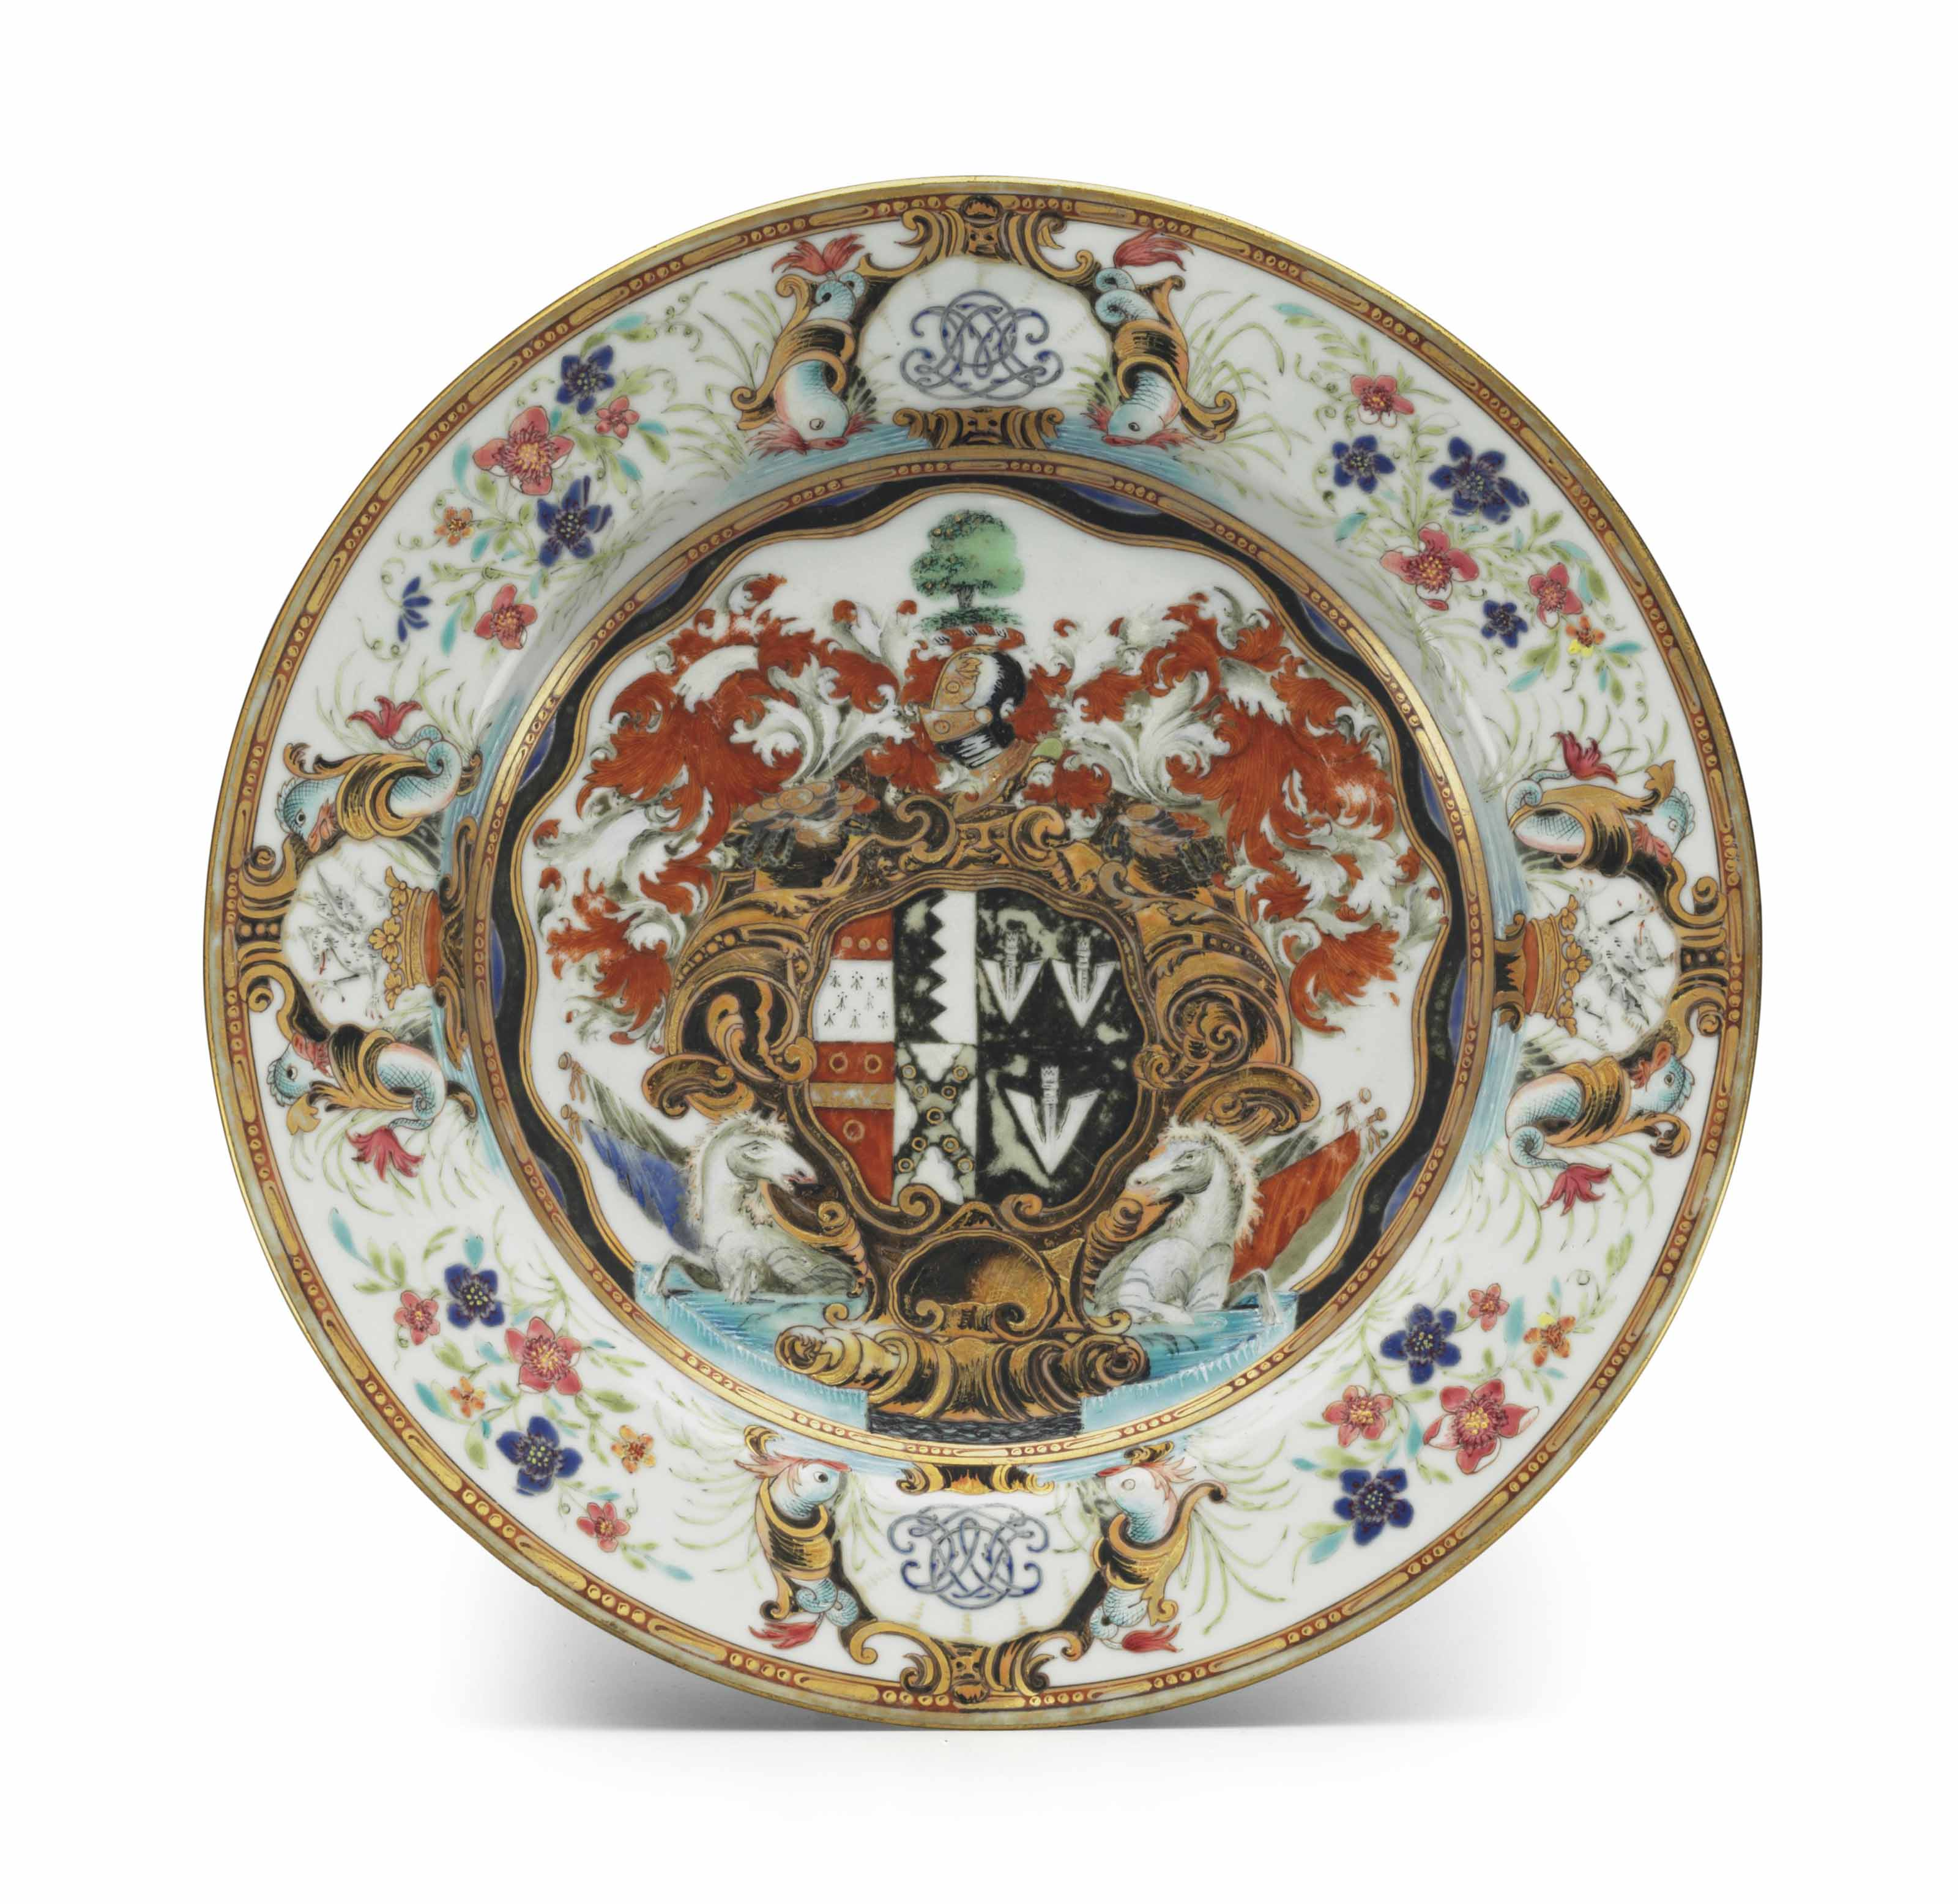 AN OKEOVER ARMORIAL PLATE